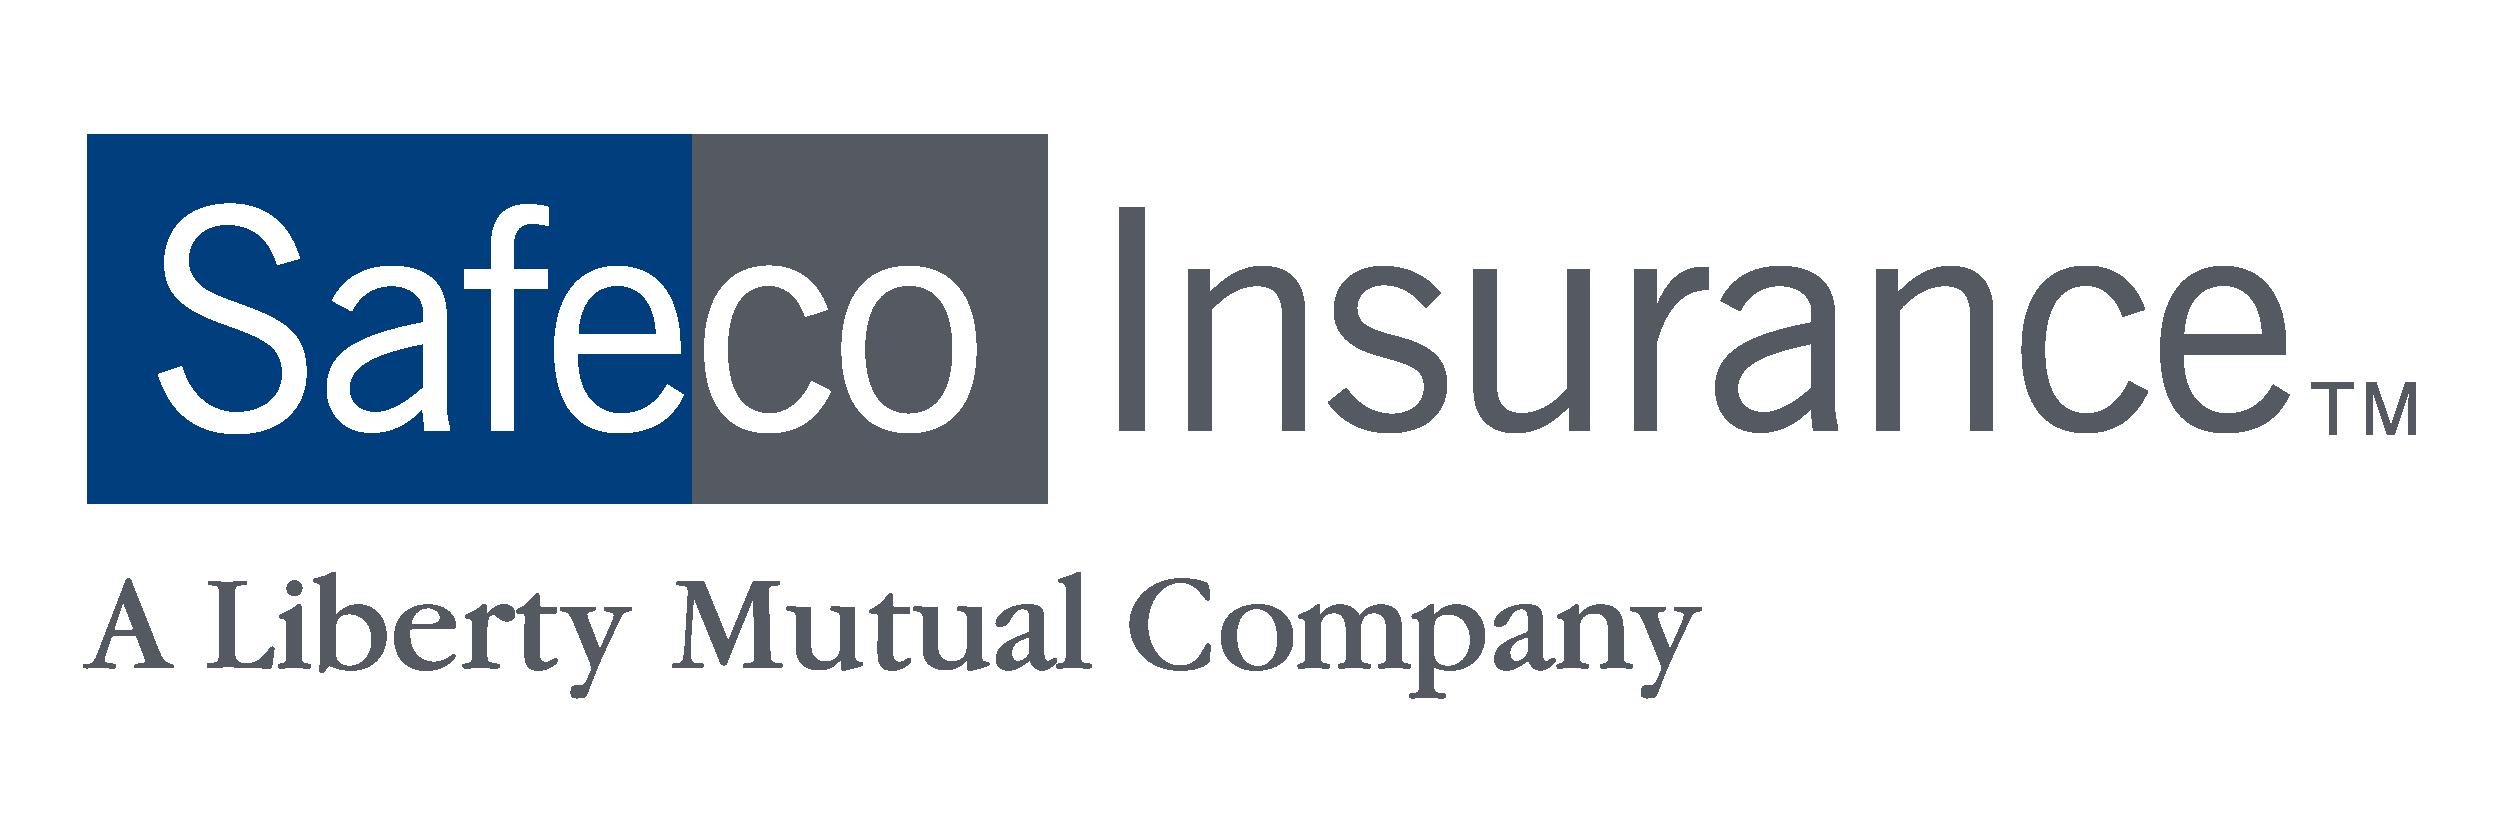 Safeco-Insurance-Logo.png